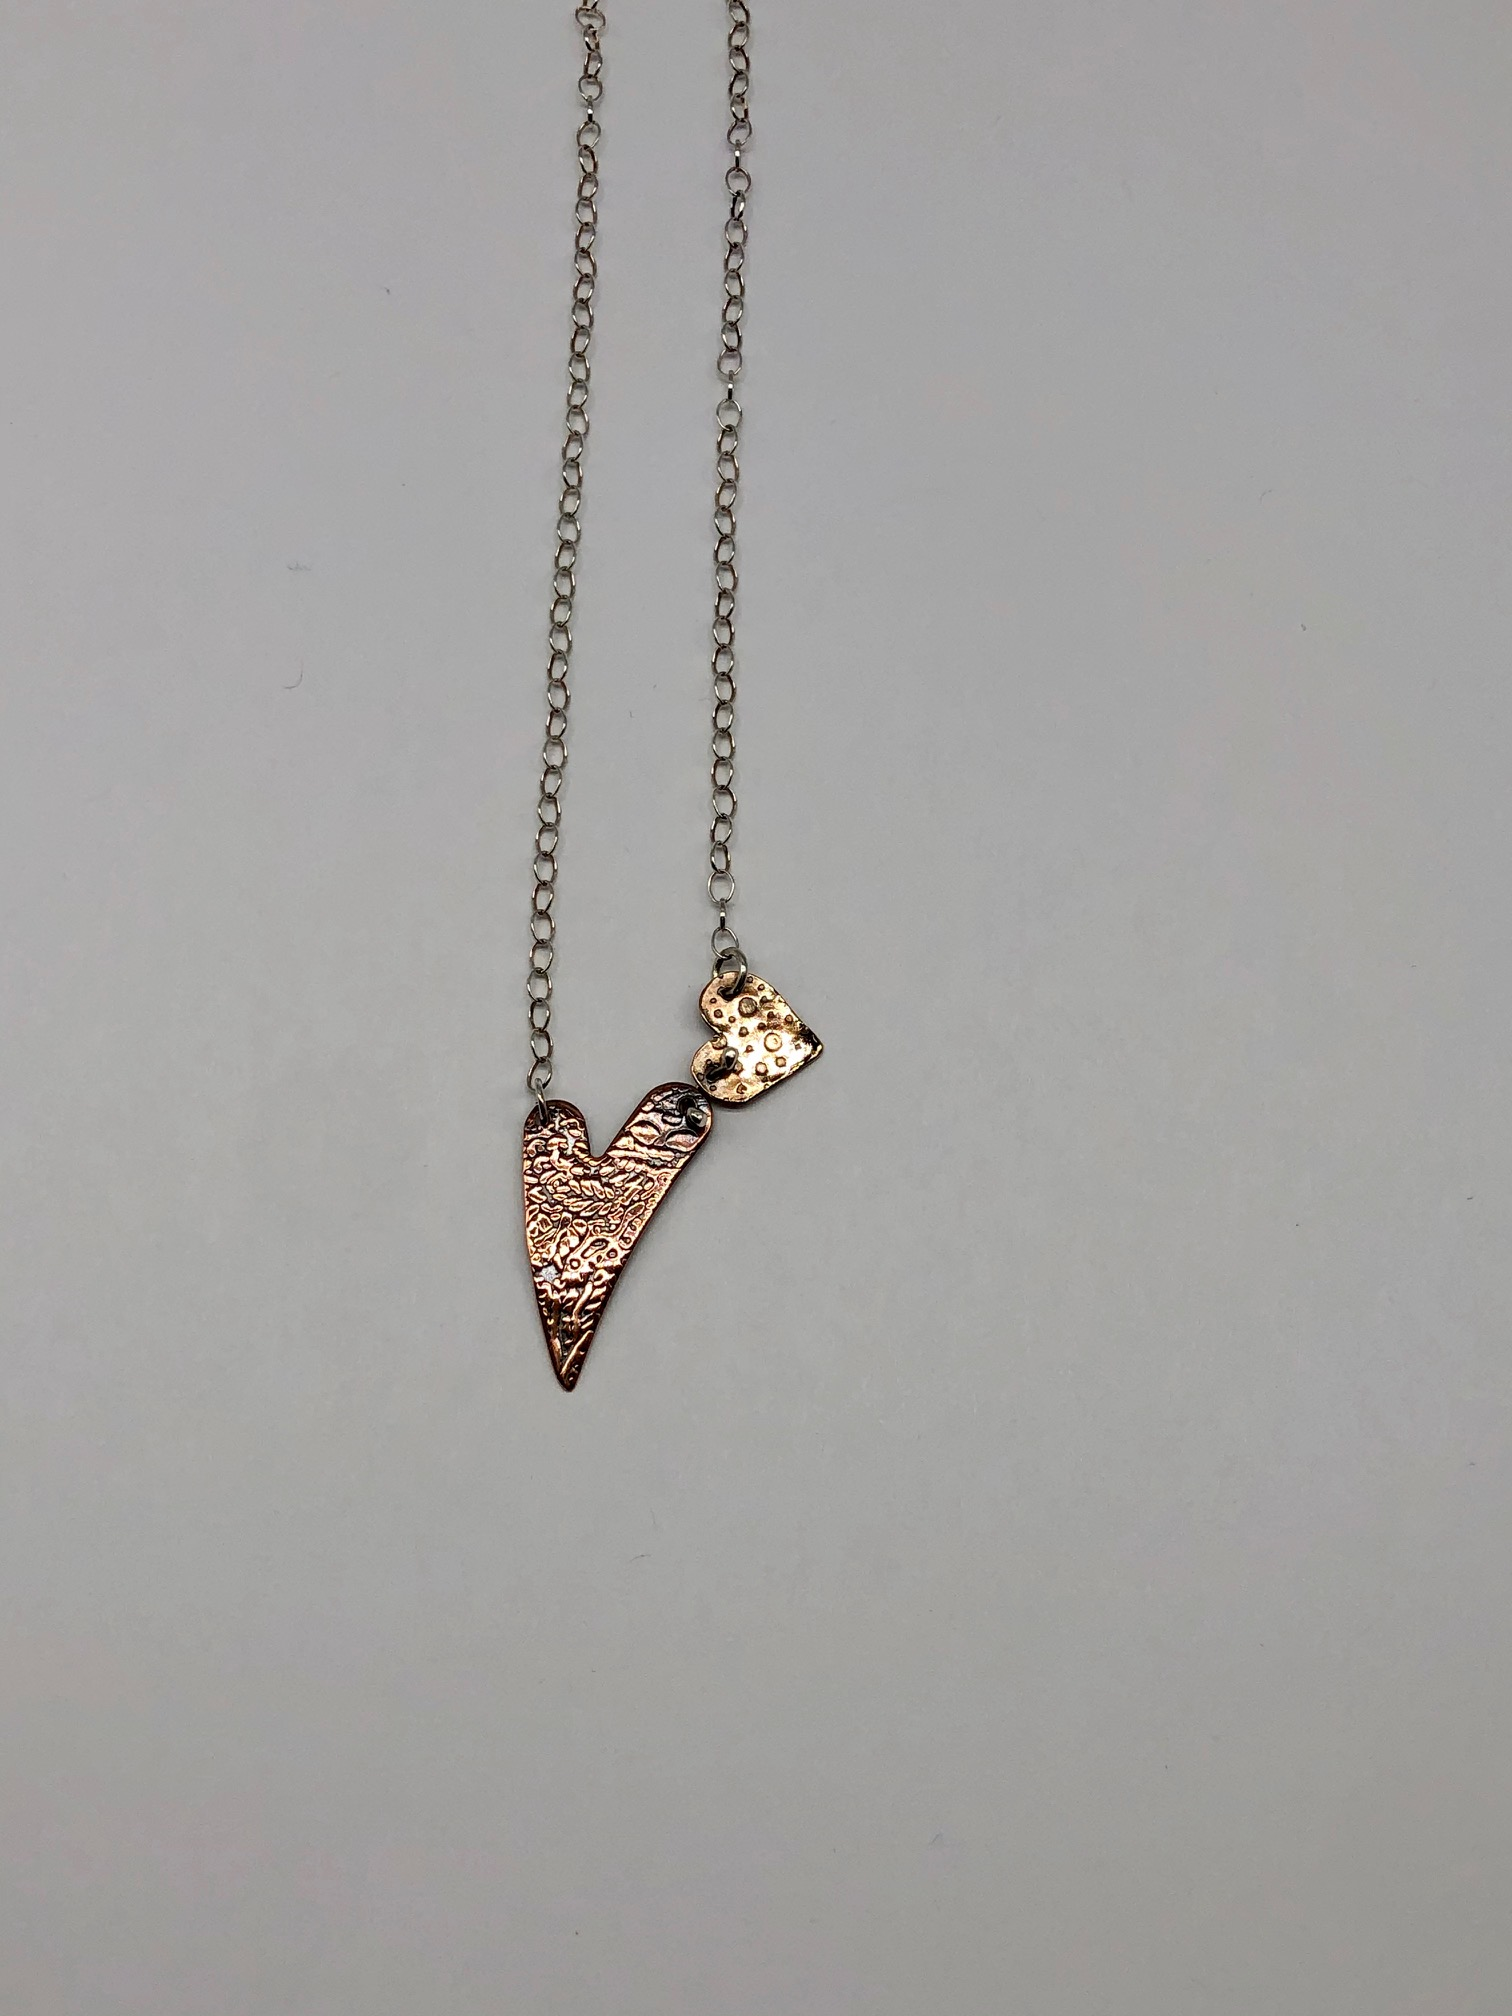 Copper and Bronze Double Heart Necklace 16